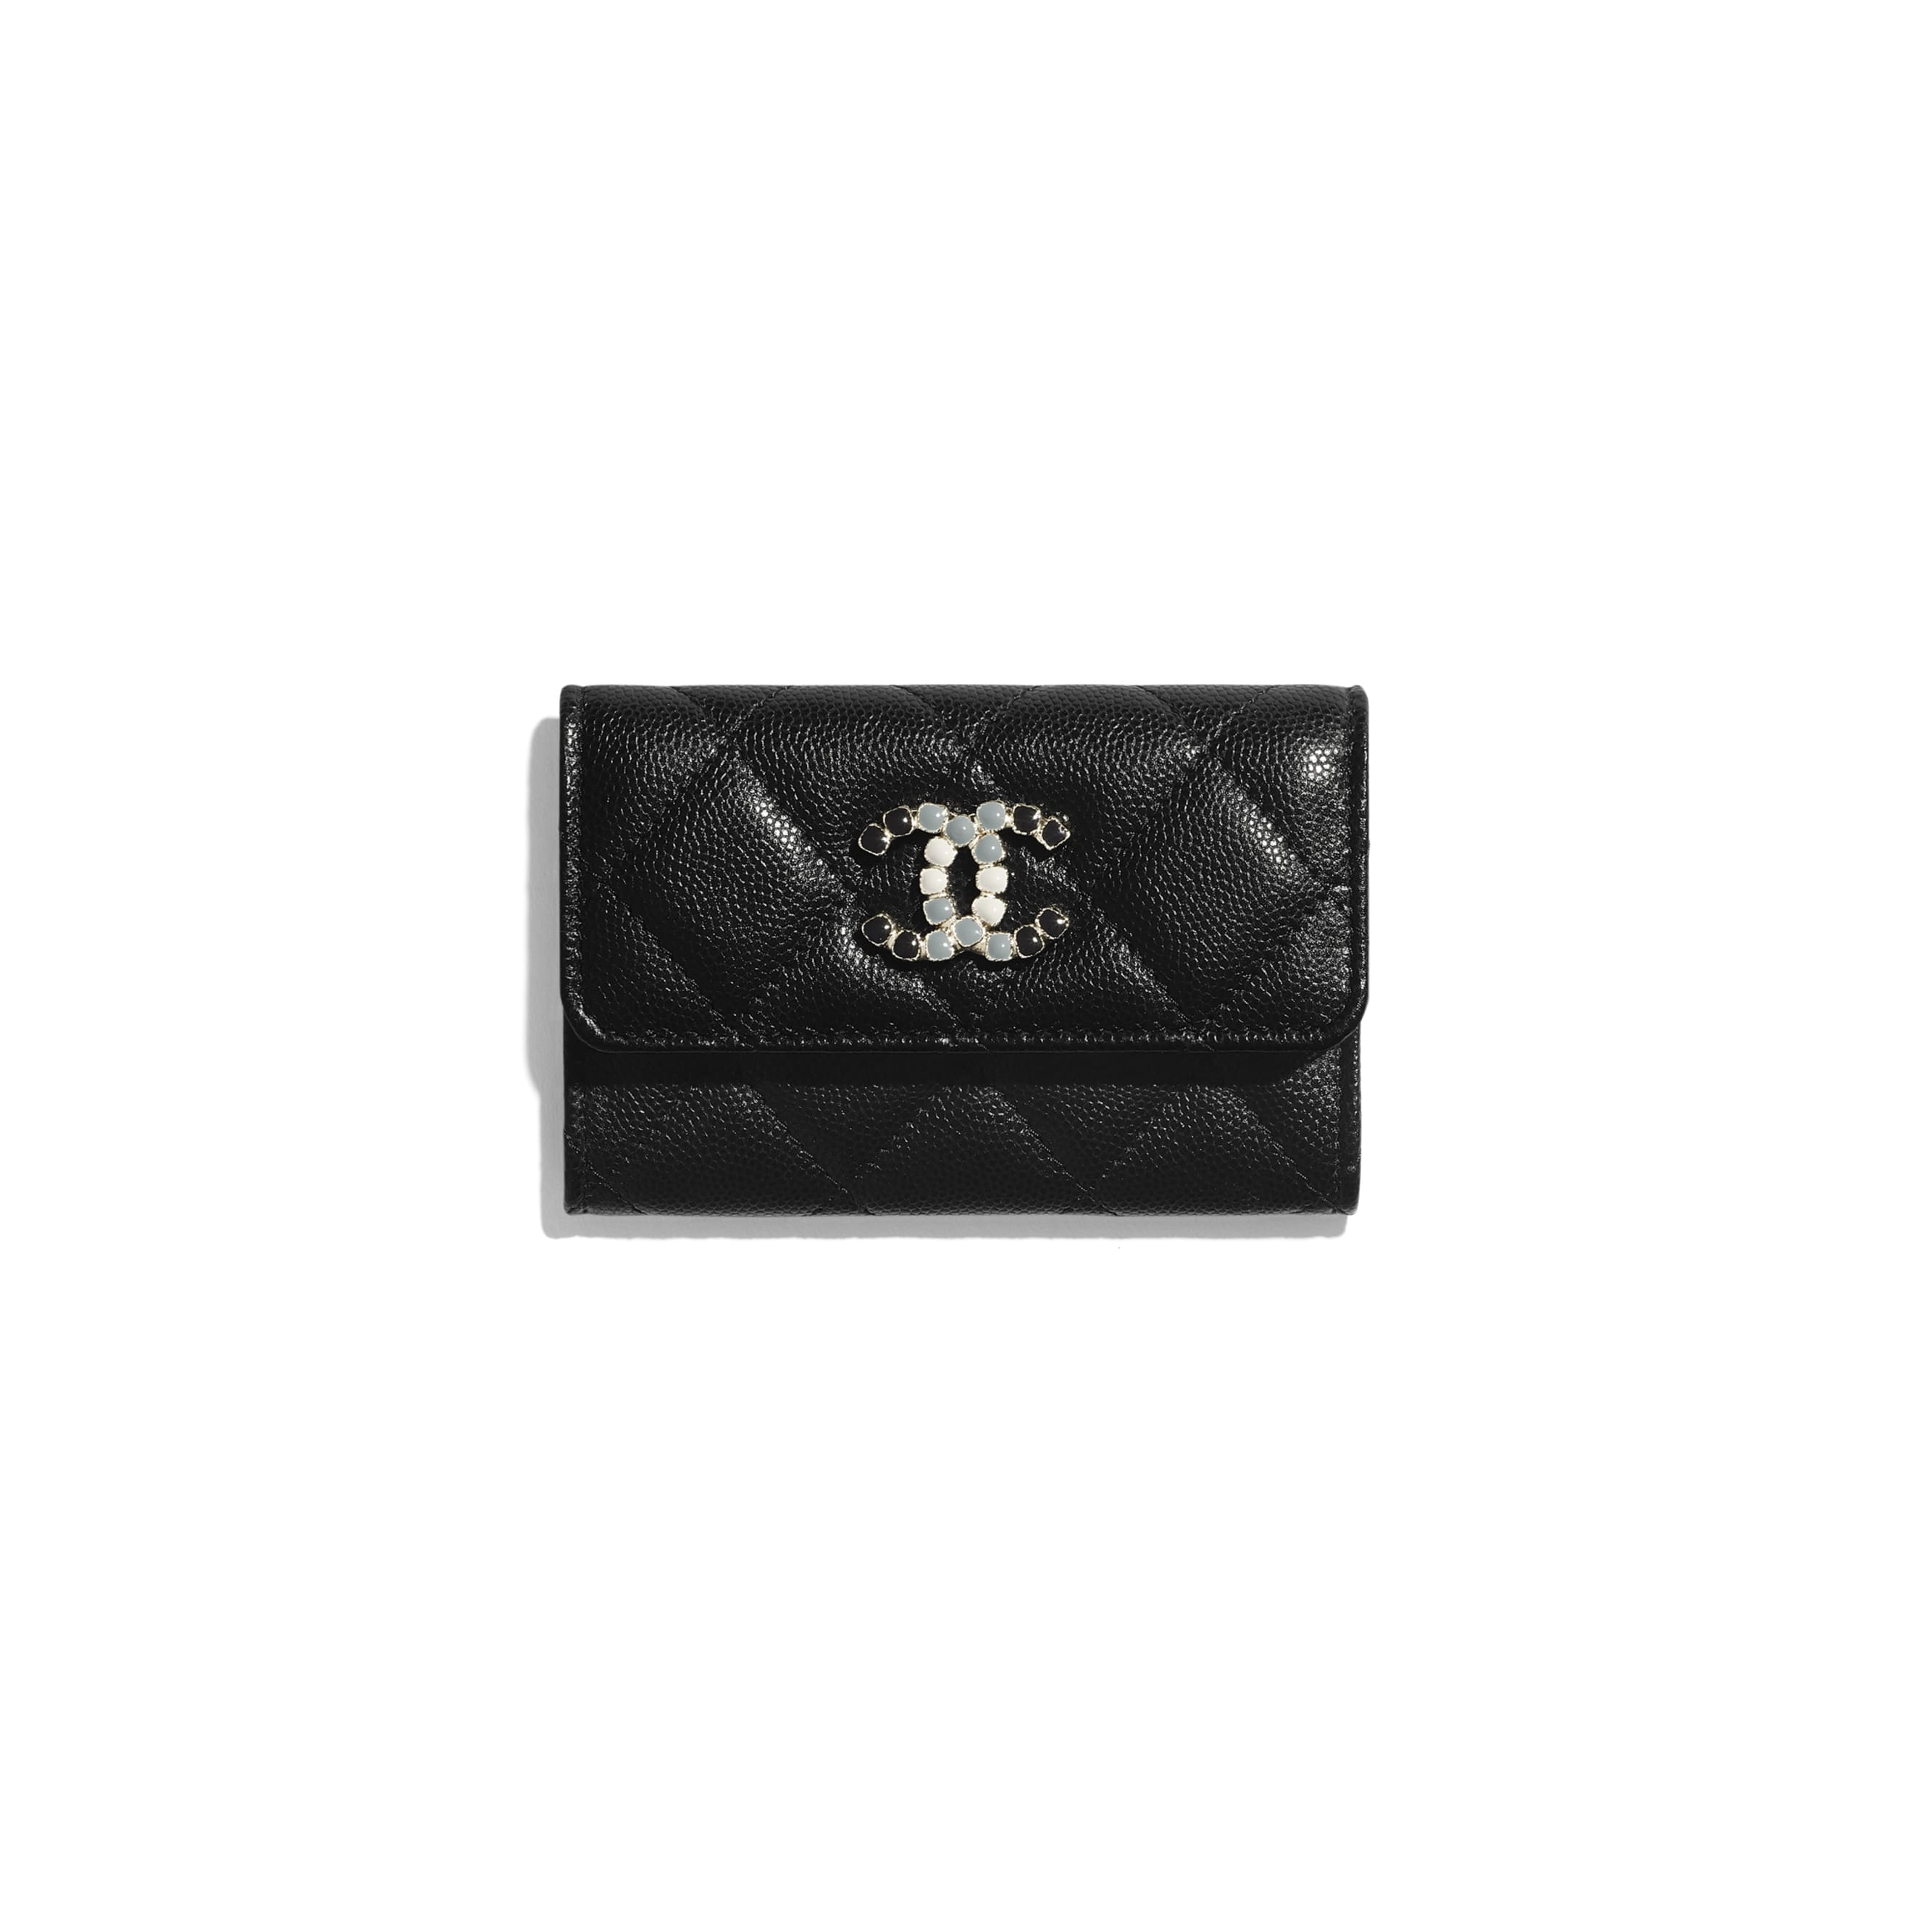 Flap Card Holder - Black - Grained Calfskin & Laquered Gold-Tone Metal - CHANEL - Default view - see standard sized version